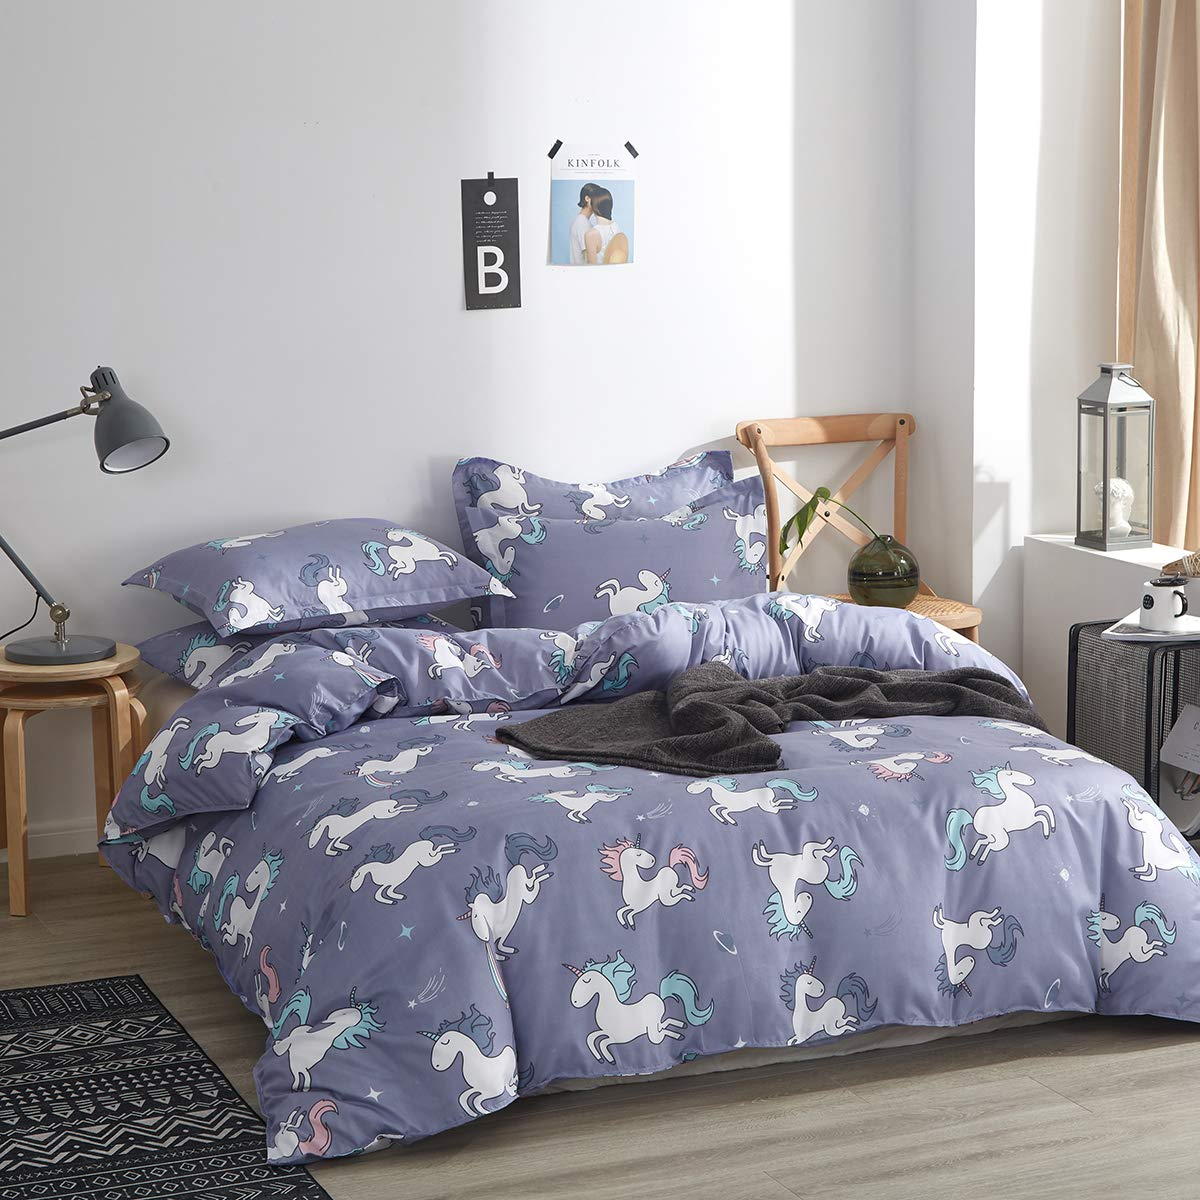 Uozzi bedding Summer Unicorn Comforter Queen Blue-gray with Stars and Rainbows 100% Microfiber Hypoallergenic Girls Boys 88x88 Unicorns Duvet Iinsert Cute All-Season Bed Comforters for Kids Teen Women